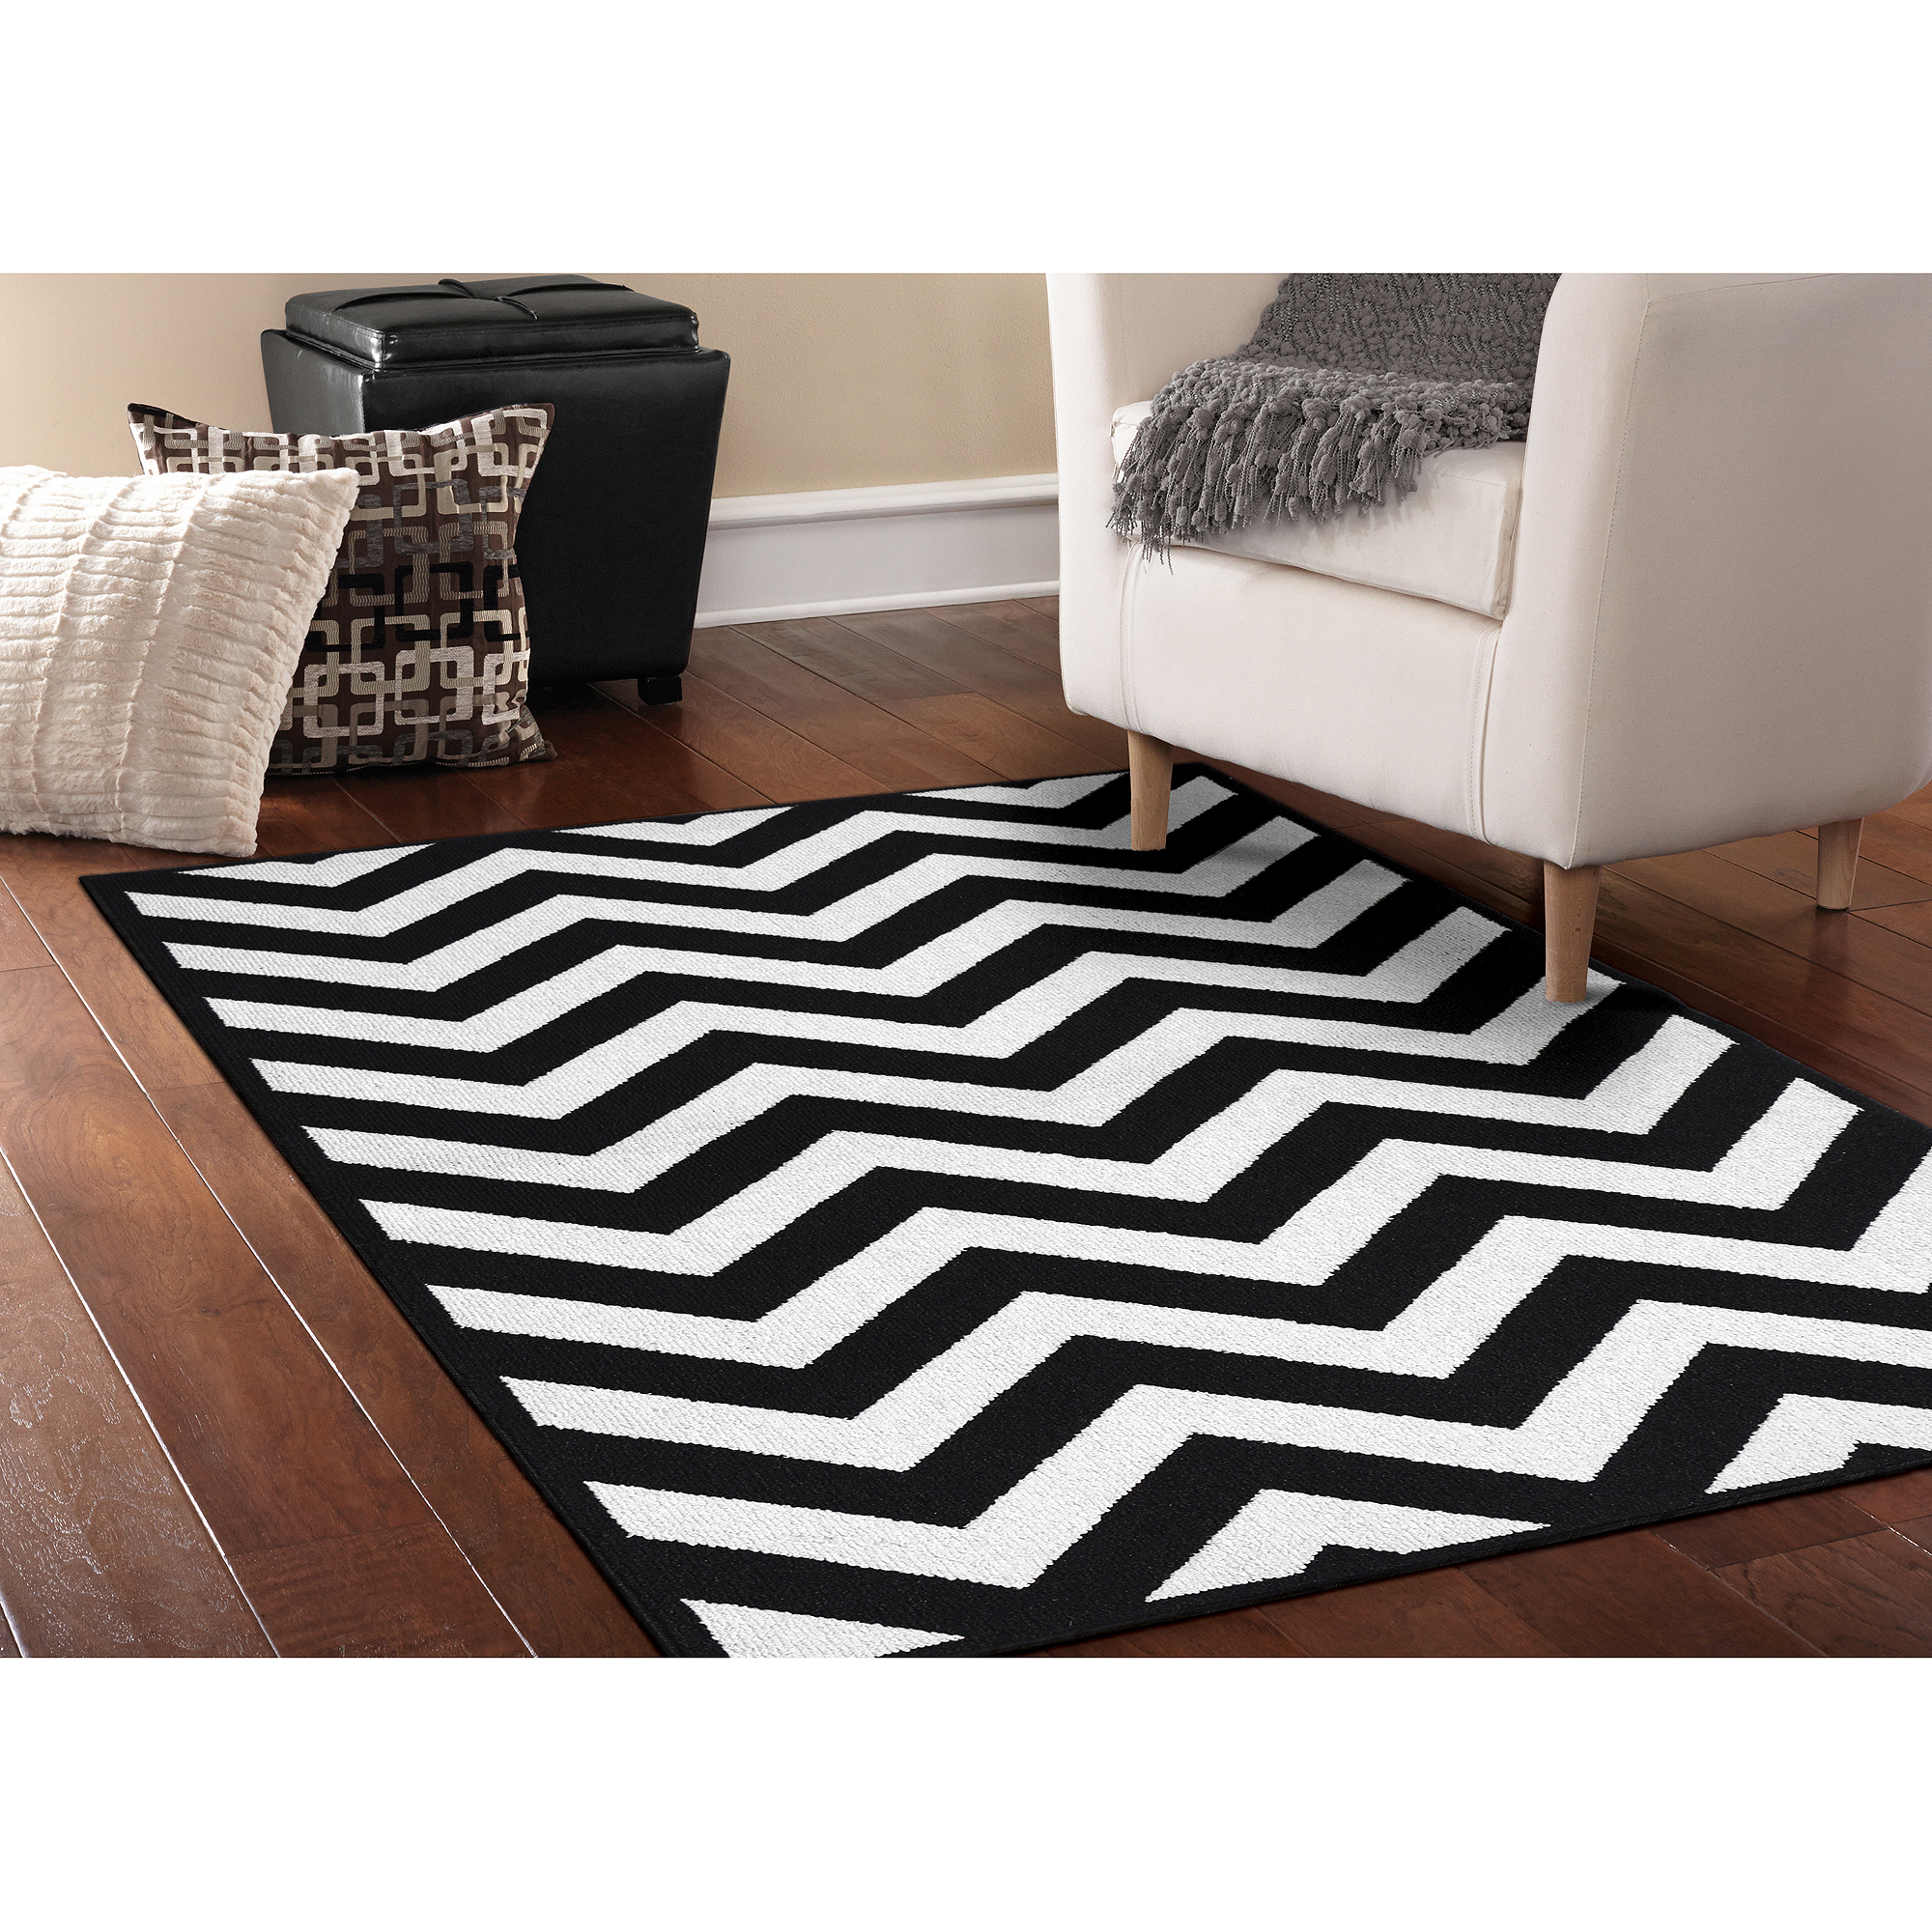 Garland Rug Large Chevron Area Rug, 5' x 7'